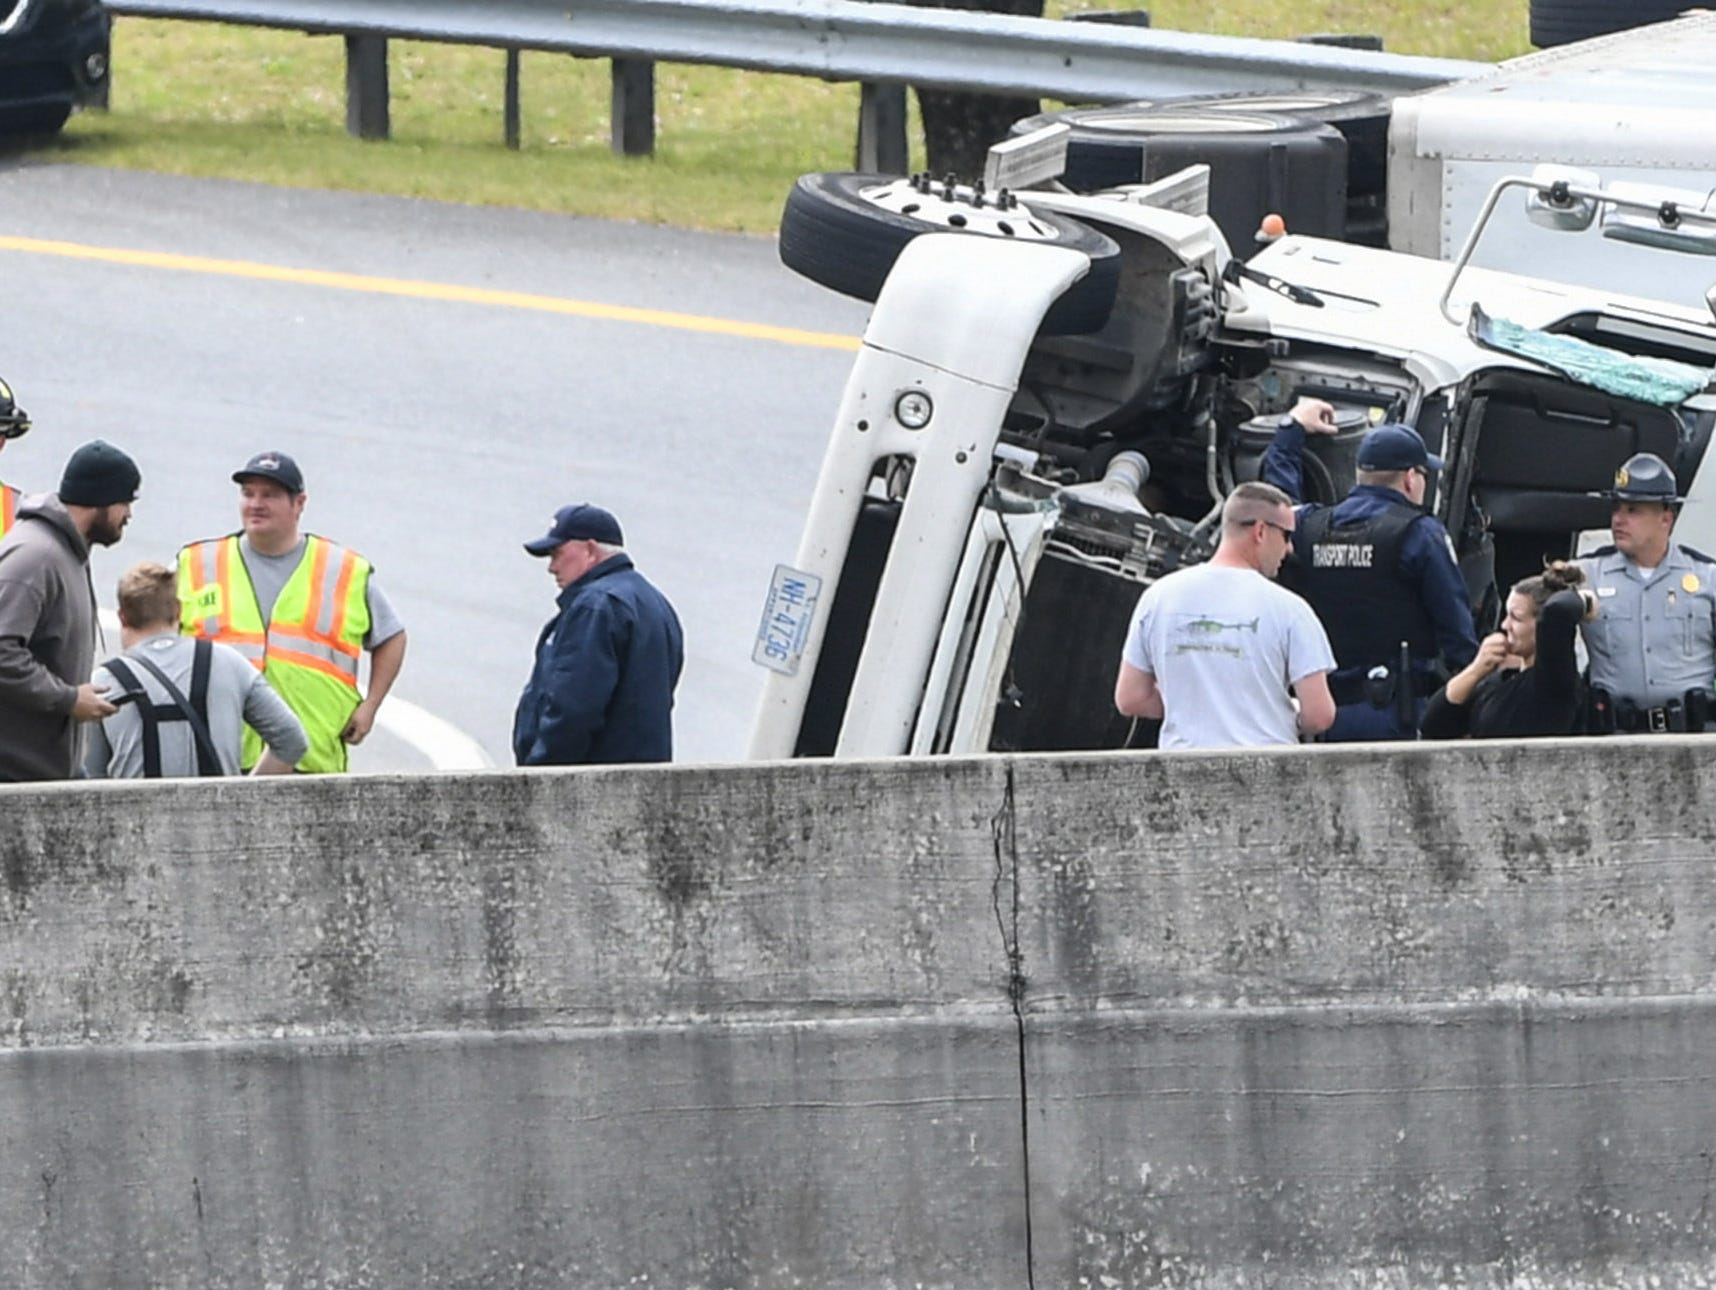 Townville fire and Fork Rescue squad work the scene of a crash with state troopers and transport police, one involving a tractor-trailer on a Interstate 85 Northbound ramp, entered from southbound Clemson Boulevard, in Anderson County Tuesday, March 26, 2019.